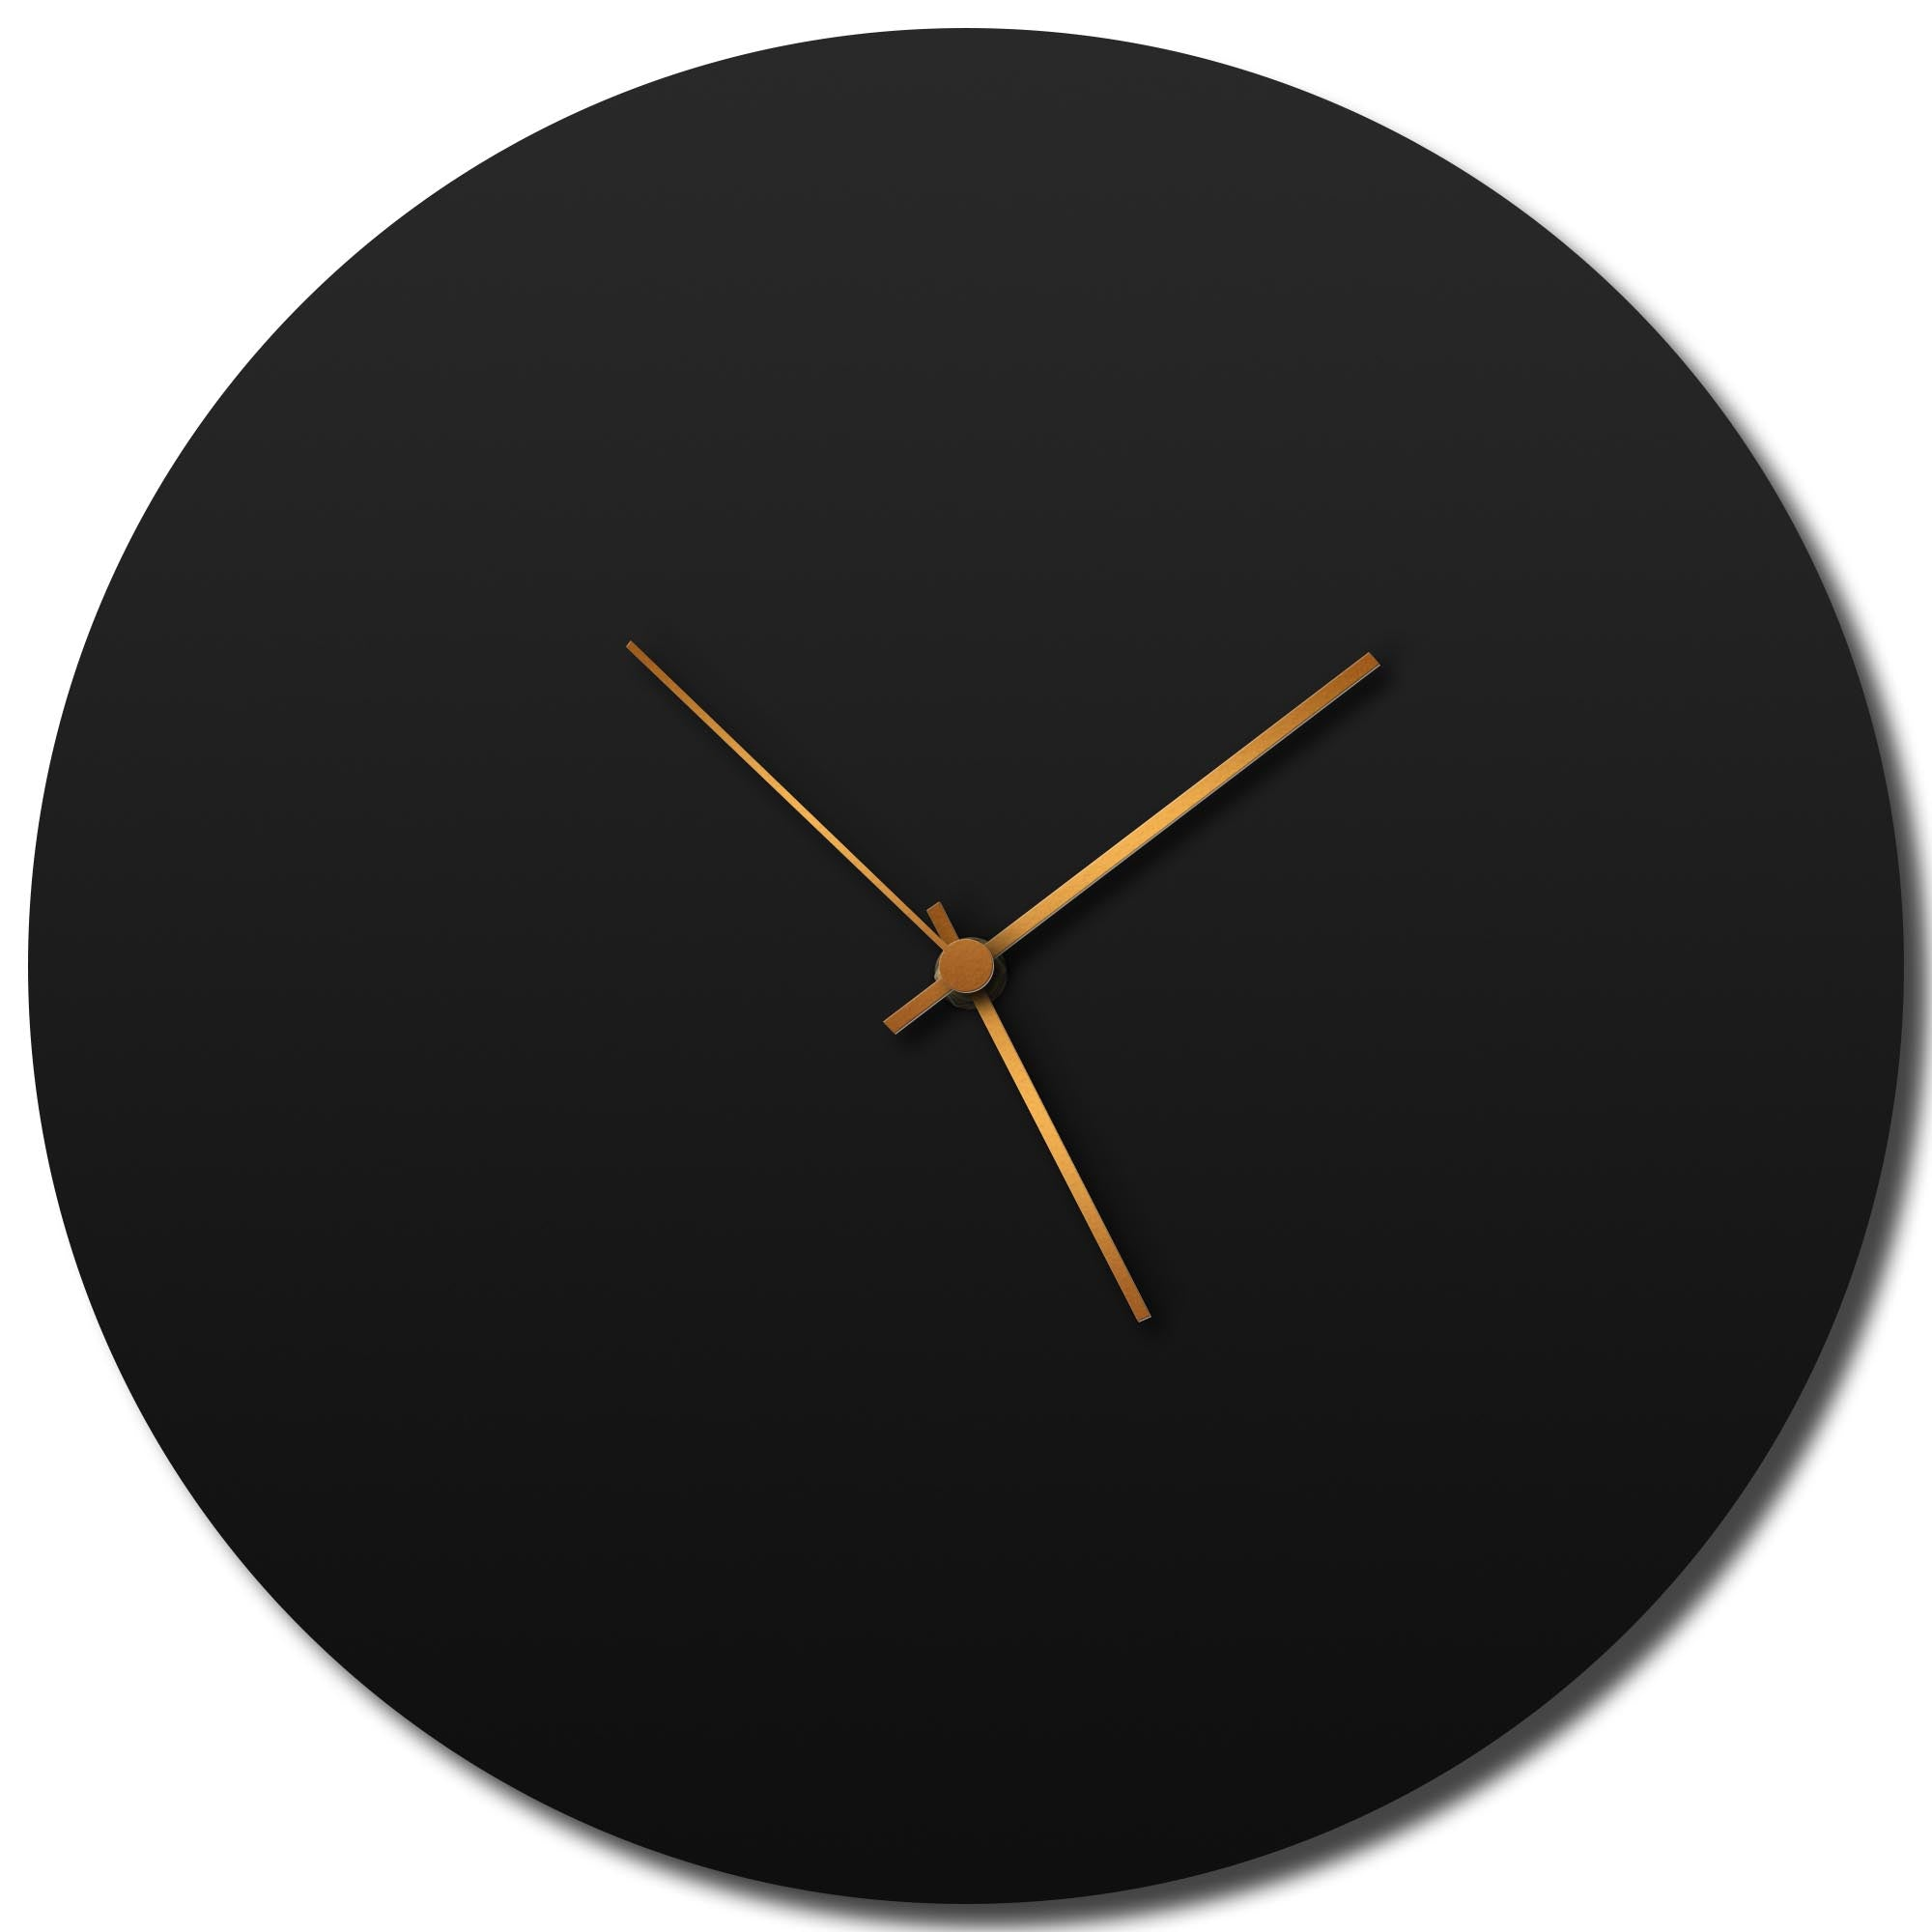 Blackout Bronze Circle Clock Large by Adam Schwoeppe - Modern Wall Clock on Brushed Black Polymetal